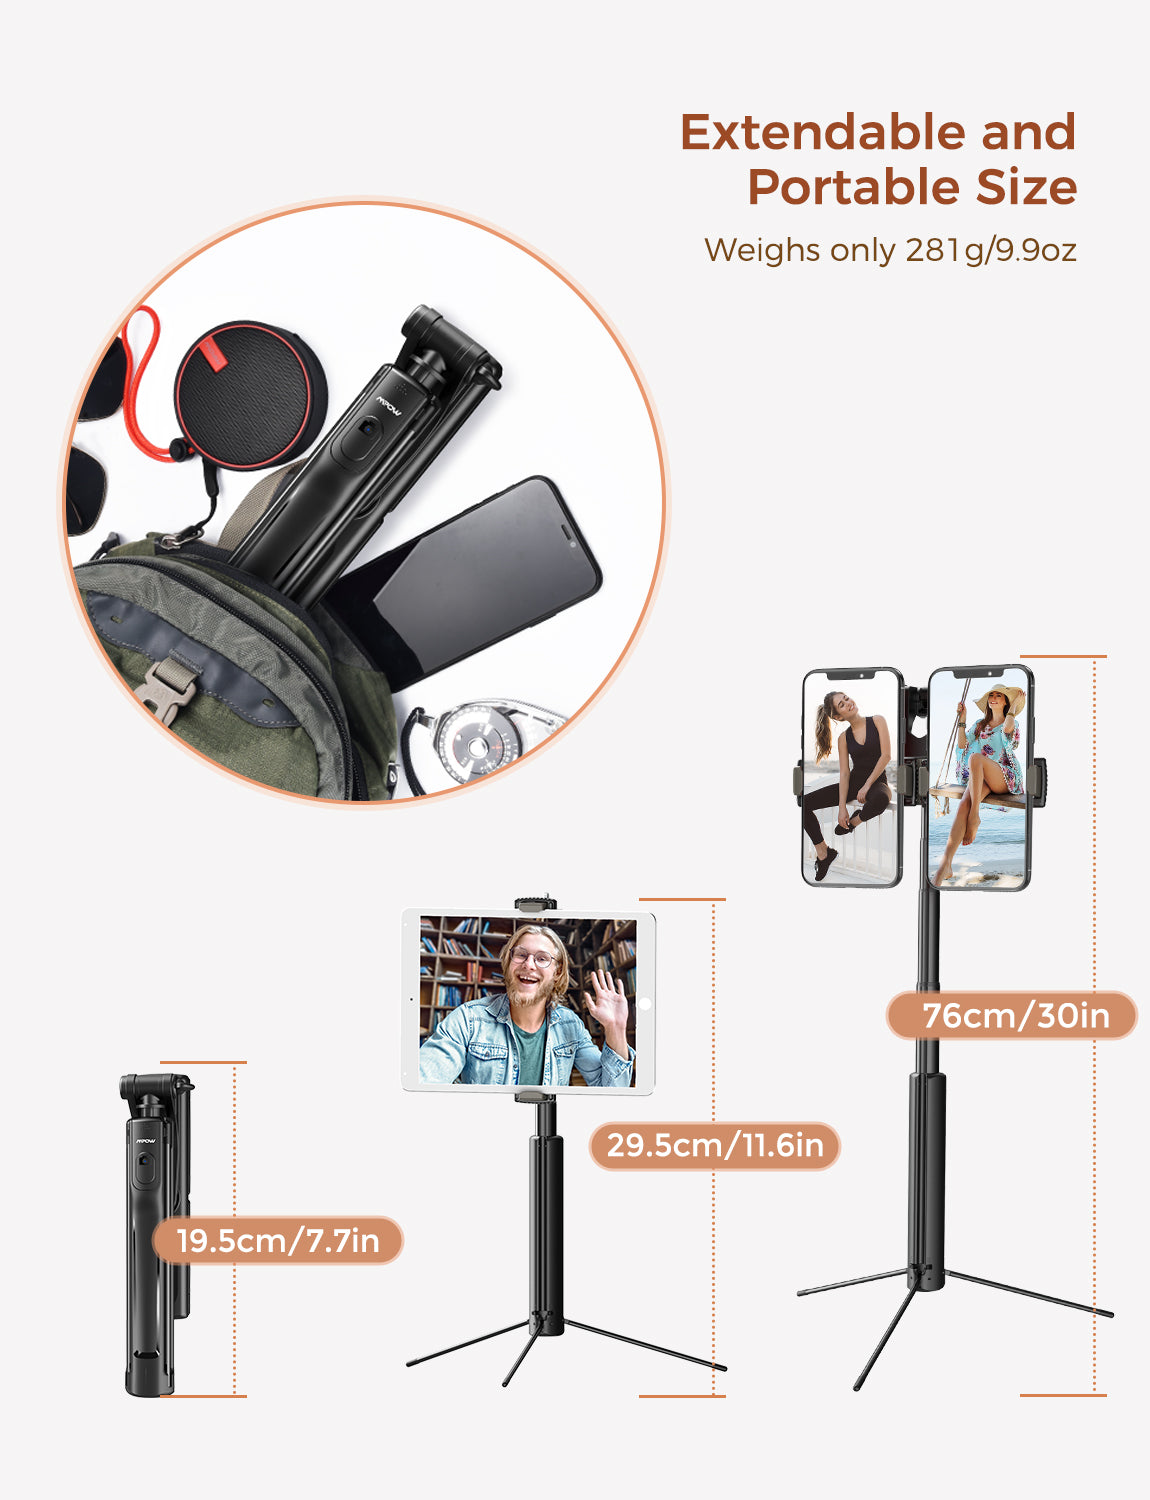 MPOW PA218A Selfie Stick Tripod with Dual Phone Holders